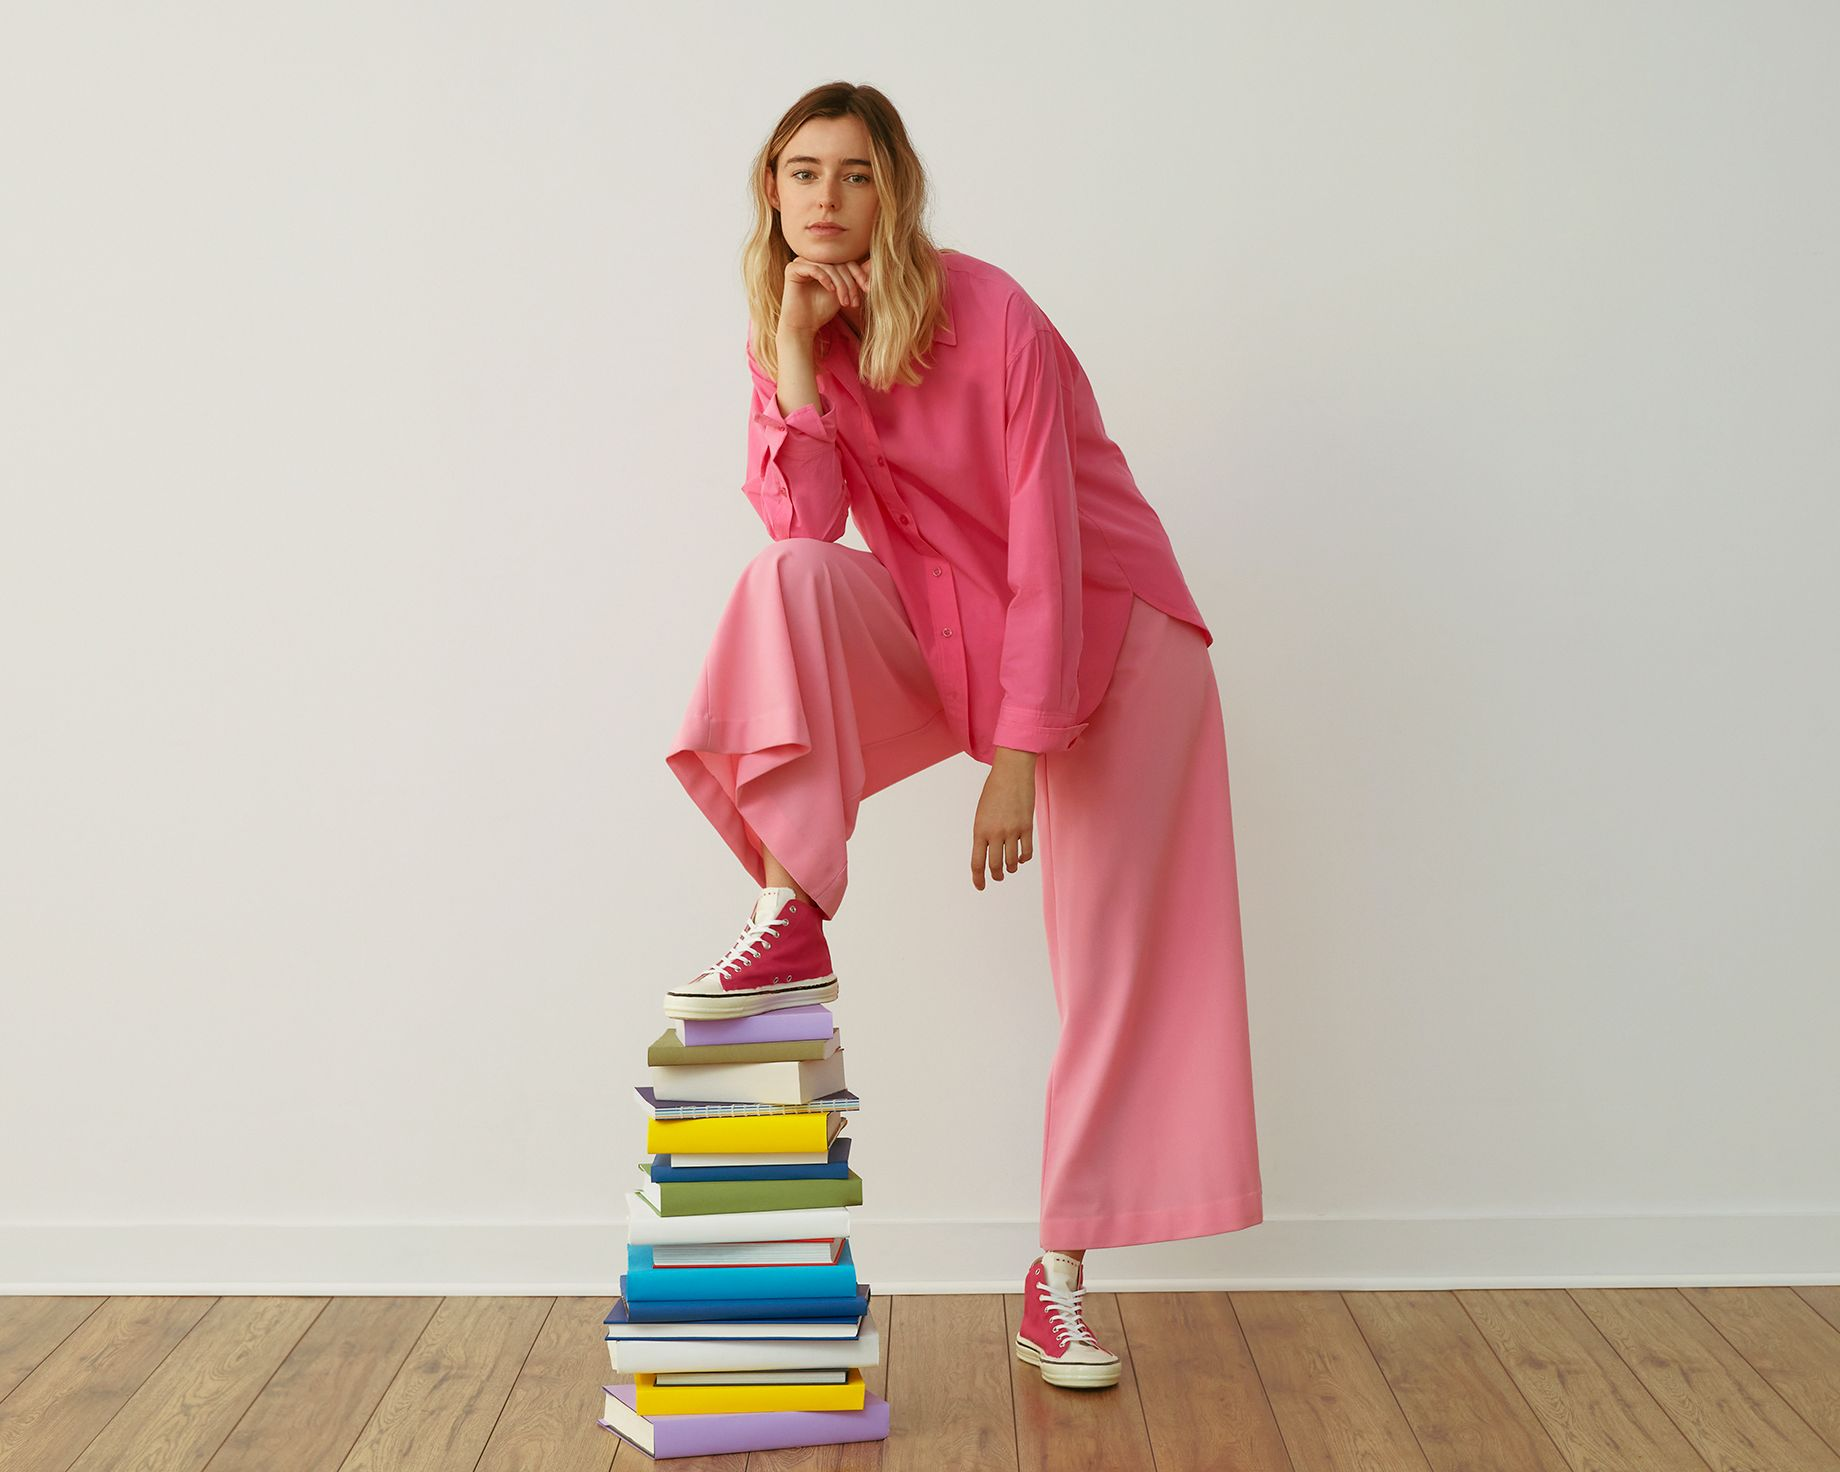 woman with pink pants posing on one leg